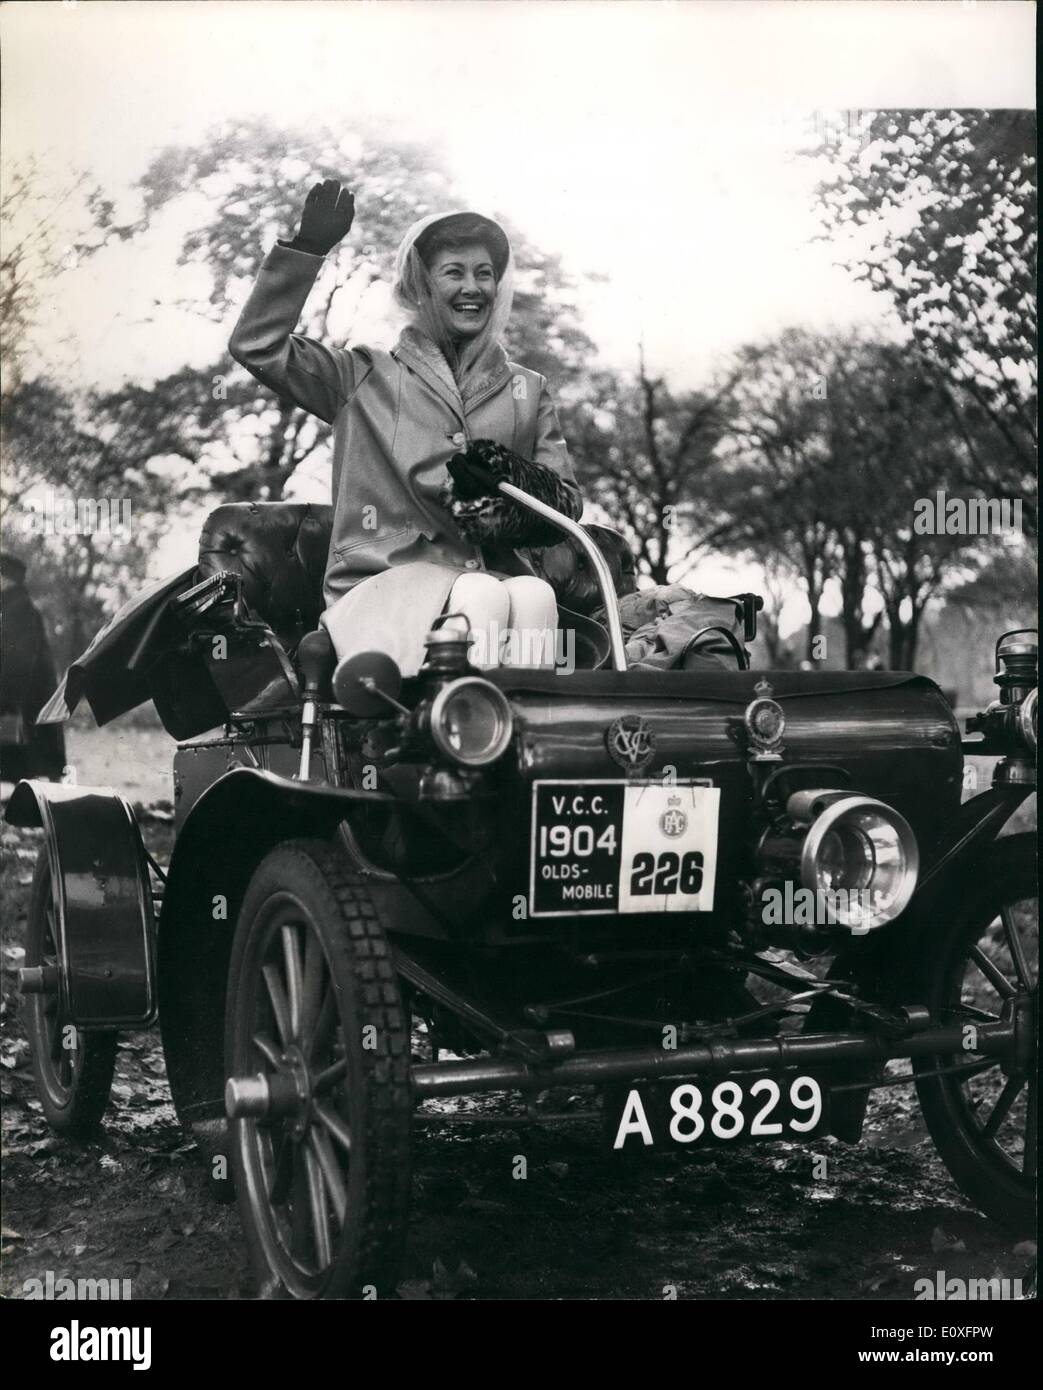 Nov. 11, 1966 - The R.A.C.'s Veteran Car Run From London To Brighton: There was a full entry of 250 cars - and 16 reserves - for this year's Royal Automobile Club Veteran car run from London to Brighton. Of the 250 cars taking part in the 53-mile journey, which started from Hyde P[ark, 27 were pre-1900. Photo Shows Film actress Dinah Sheridan who starred in the film ''Genevieve'' took part in the run for the first time when she trevelled in a 1904 Oldsmobile, entered by Mr. G.E. Mawer, President of the Veteran Cap Club. - Stock Image